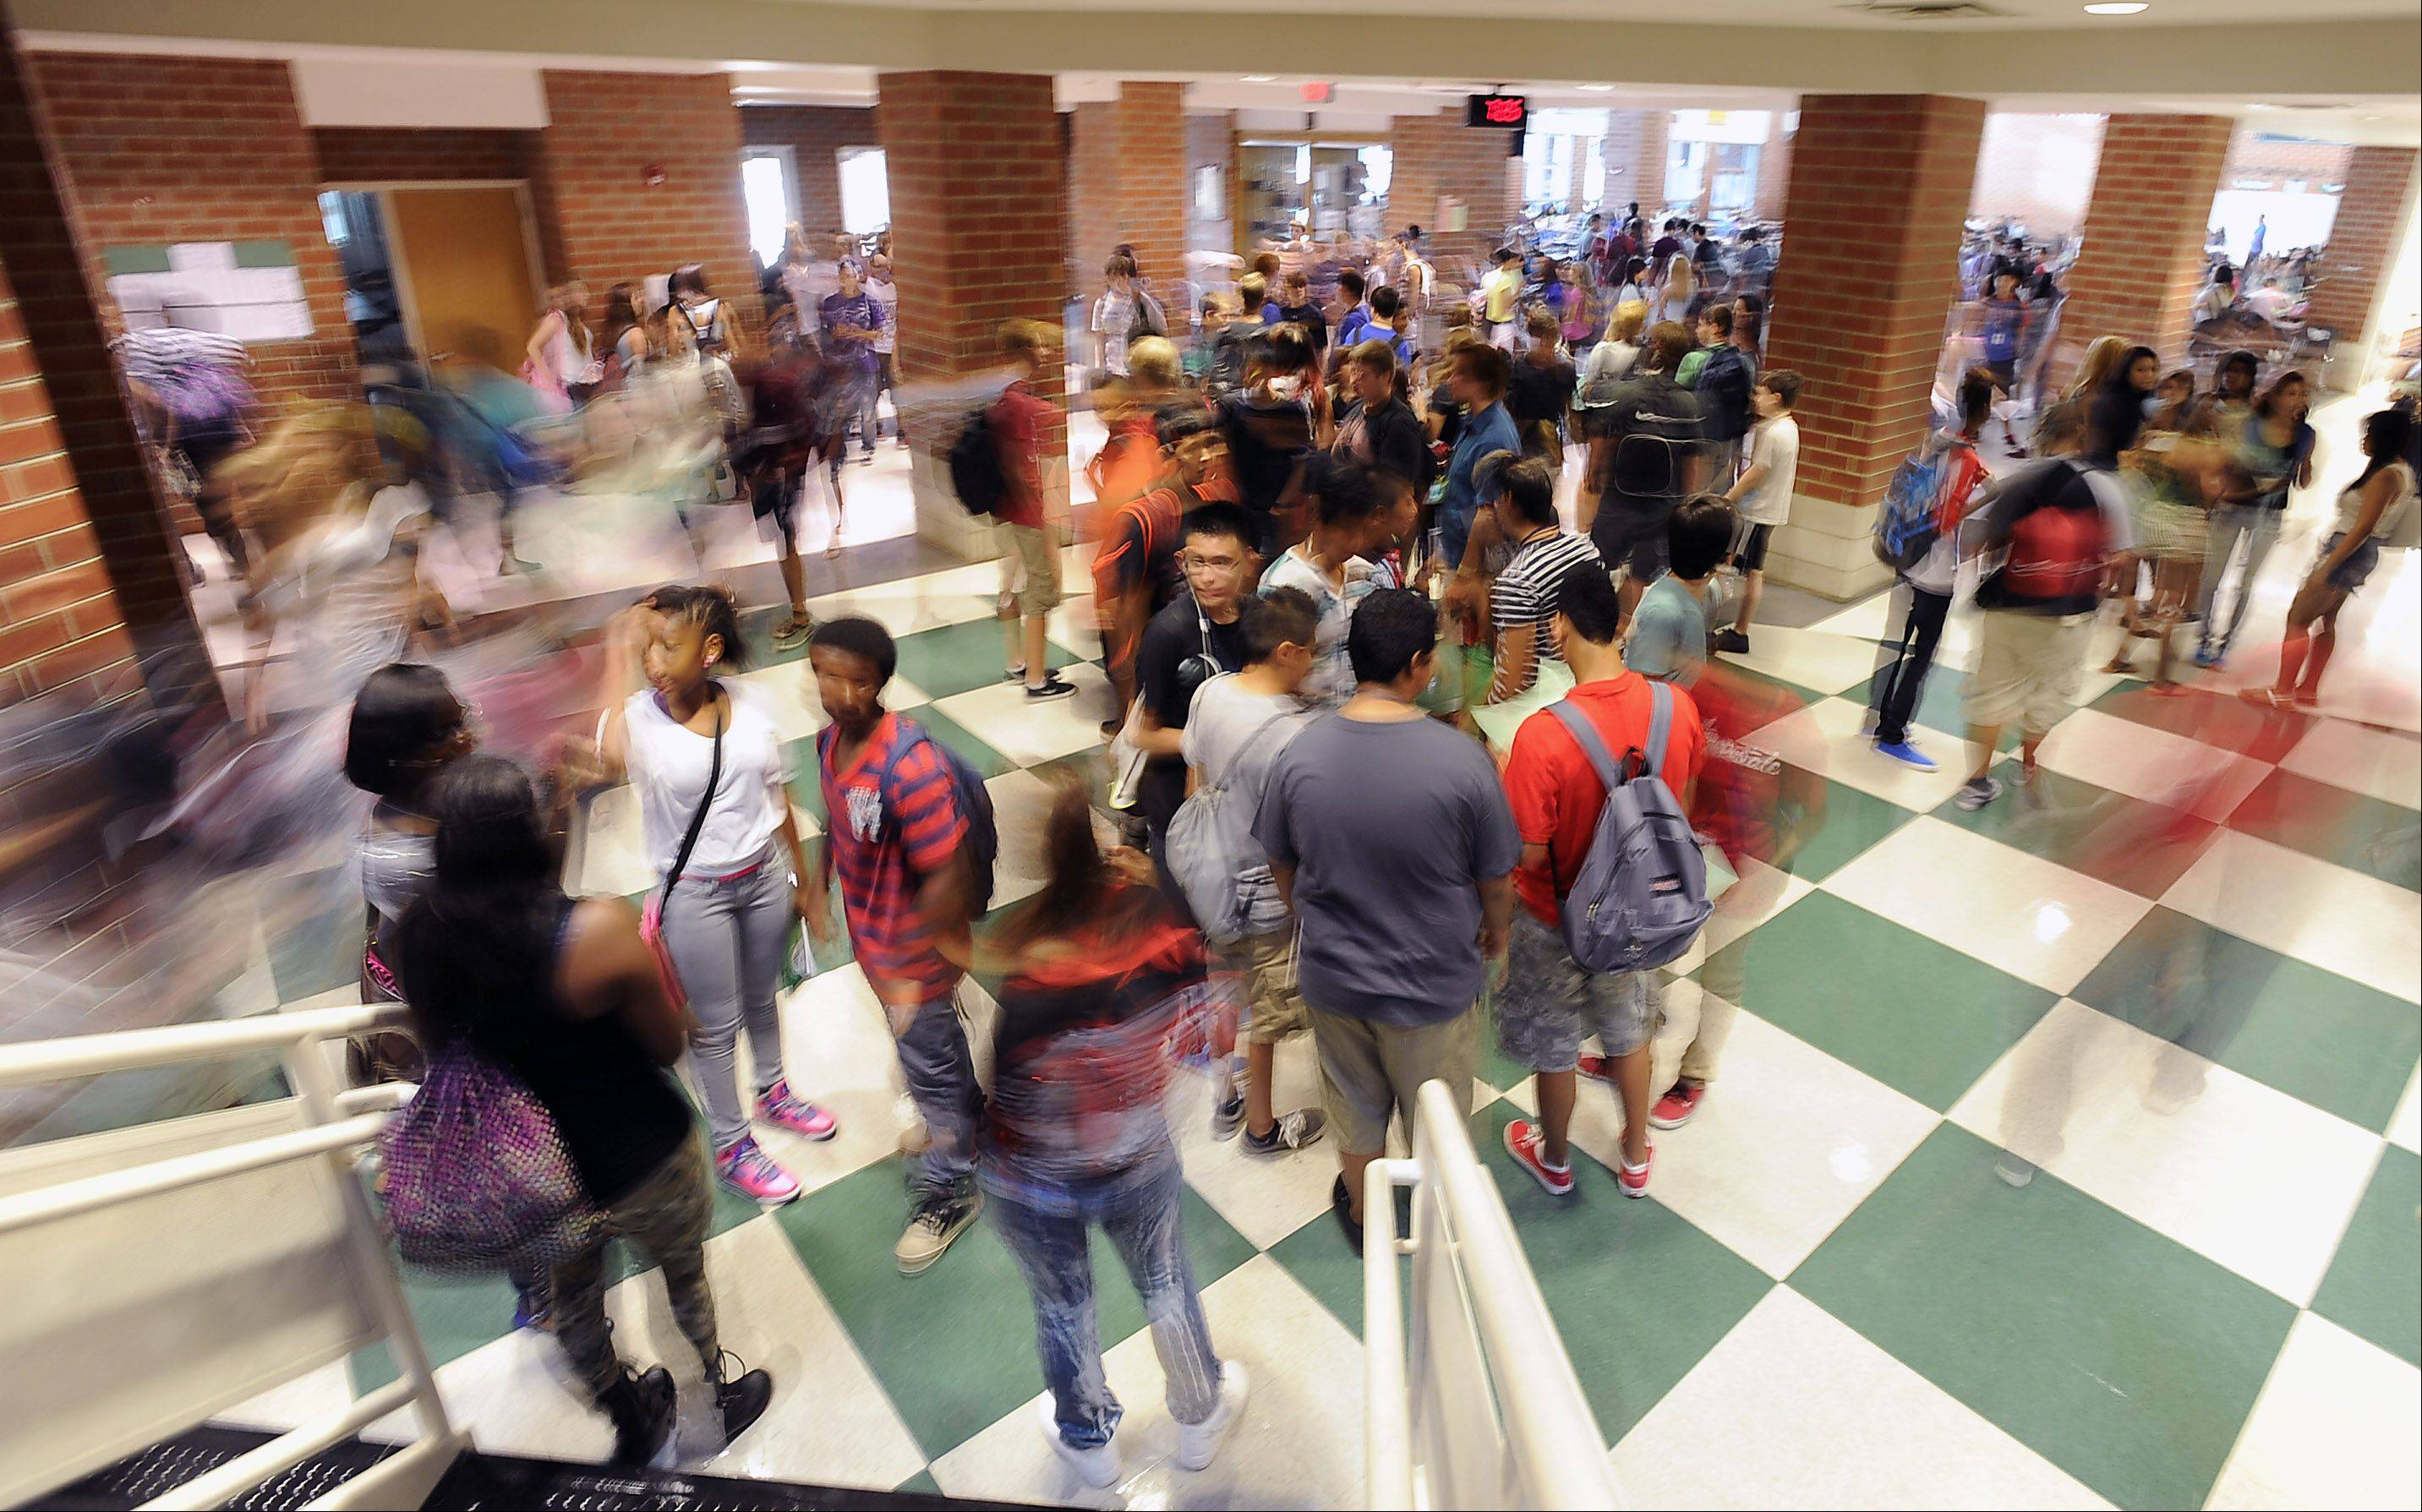 Students at Bartlett High School hurry to their classes on this first day back to school on Monday.